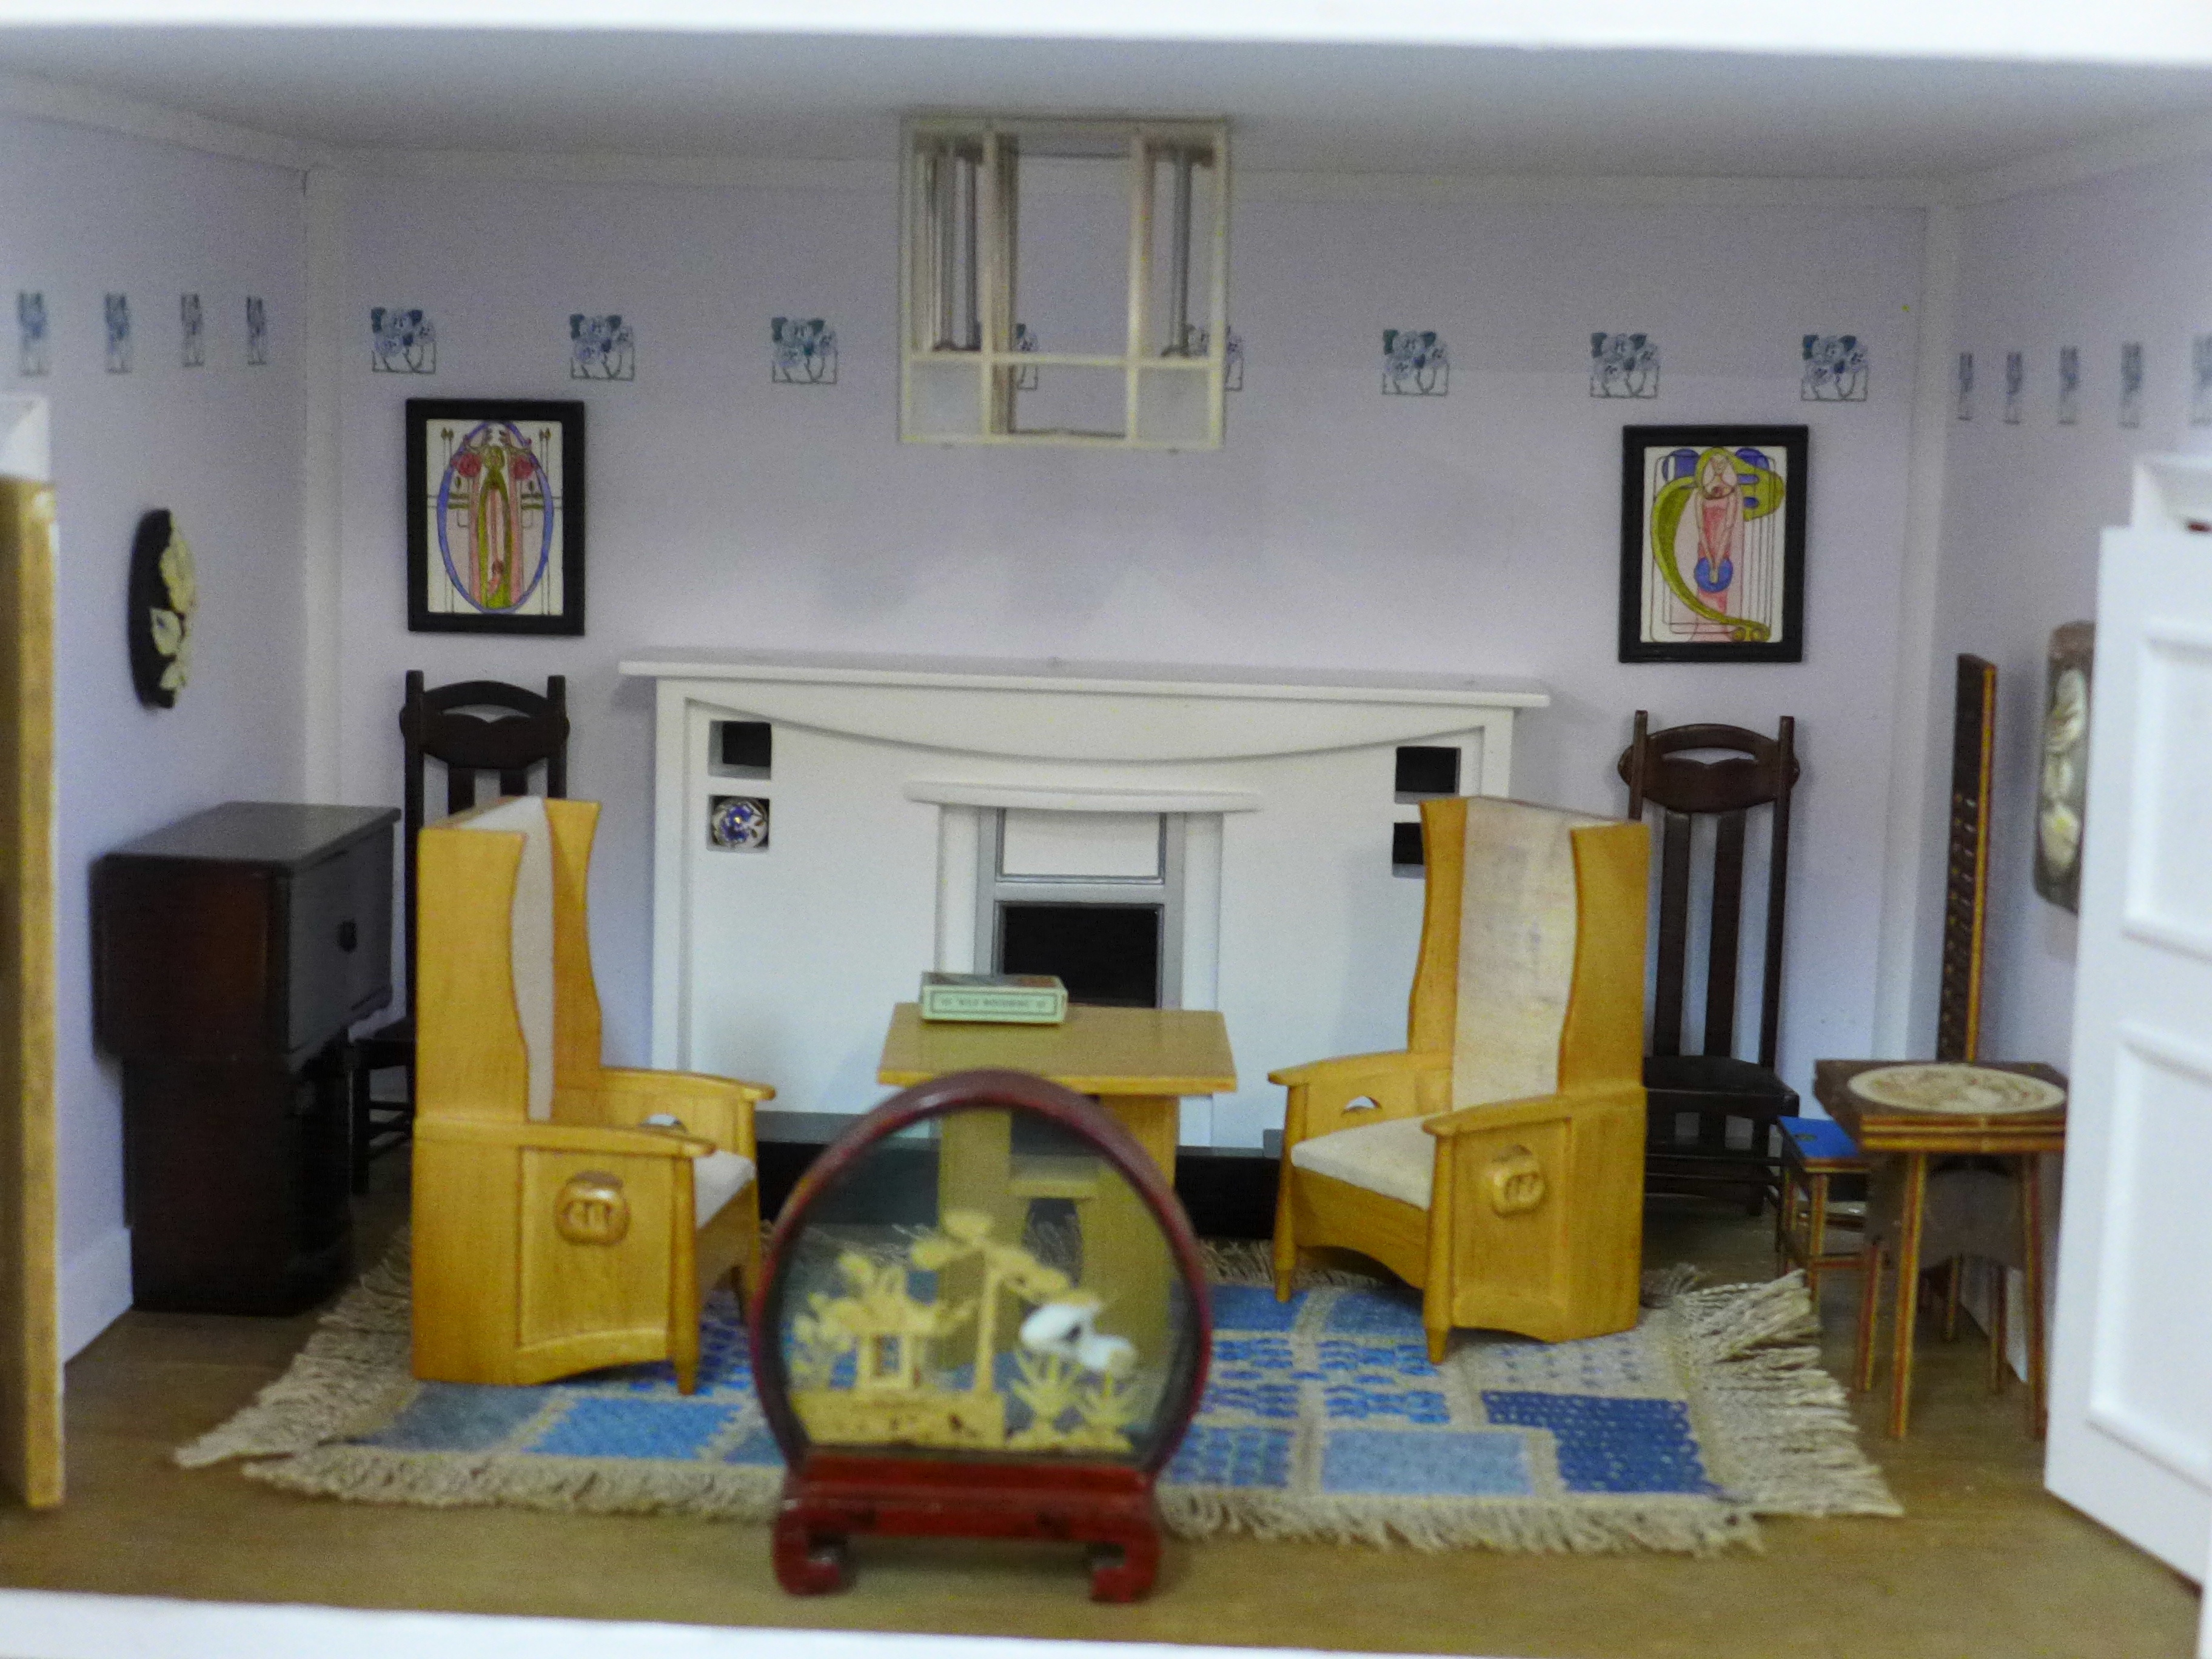 A Dolls House Emporiun Charles Rennie Makintosh-style Scottish House and Furniture. Assembled from a - Image 9 of 18